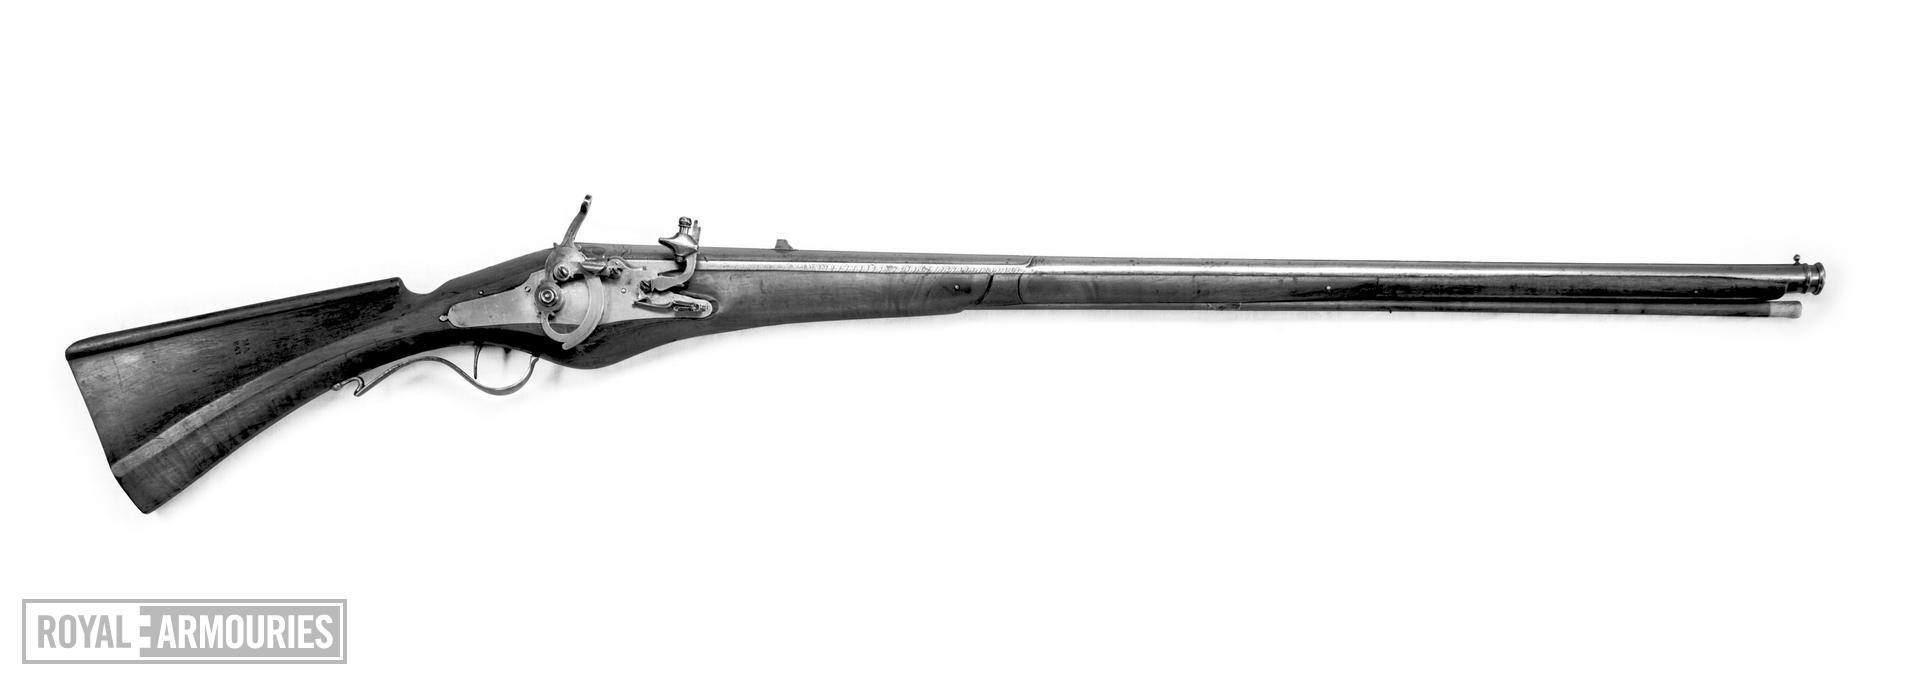 Pyrites muzzle-loading lock gun - By Rafaello Verdiani Heavy barrel with two parallel ridges running the entire length and a double moulding at the muzzle.